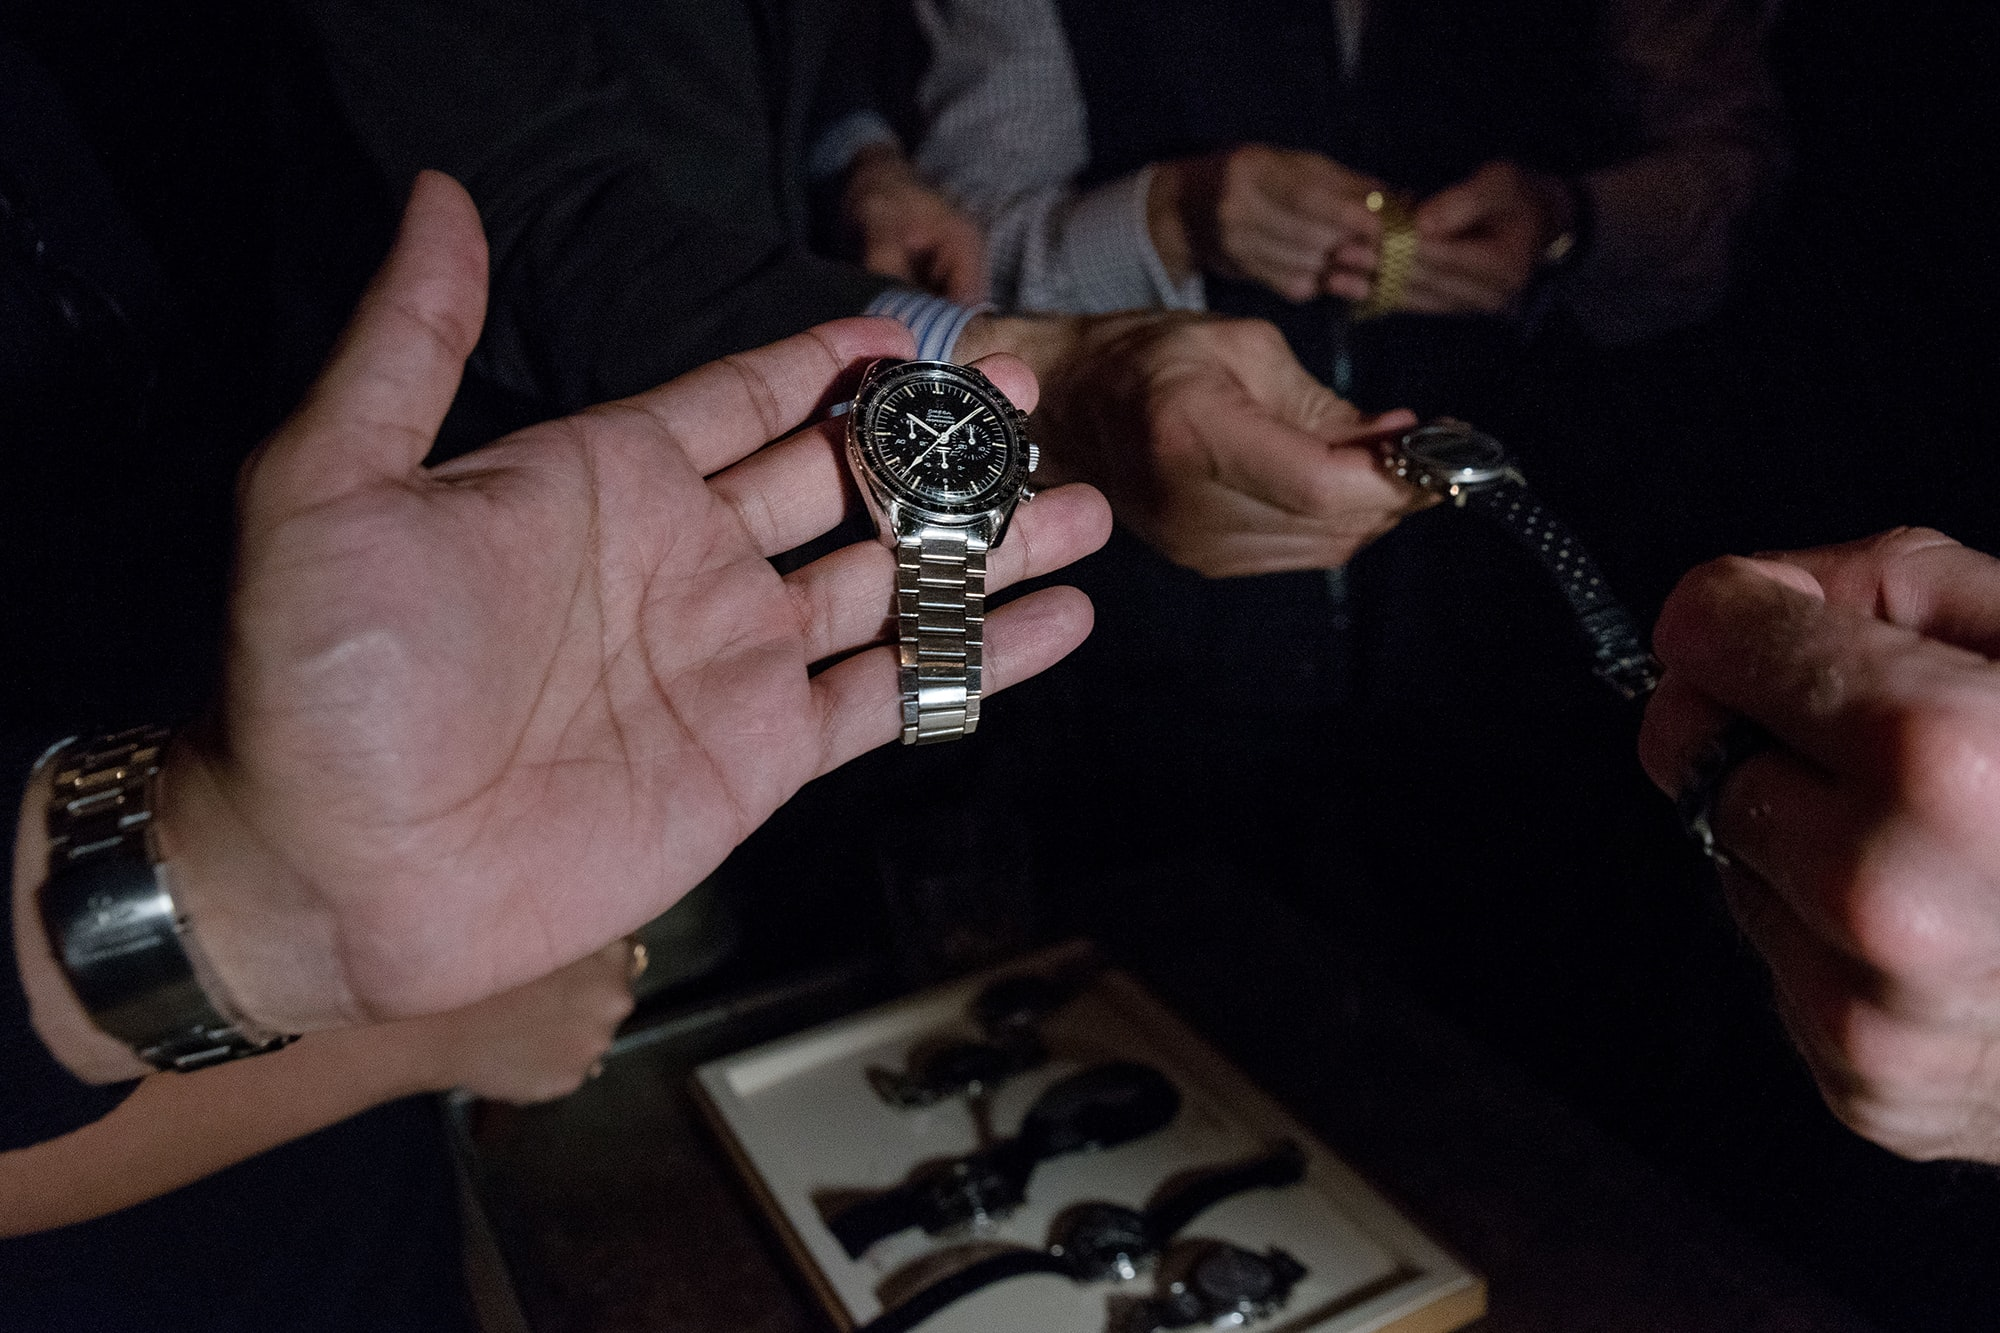 Photo Report: HODINKEE And Omega Celebrate The 60th Anniversary Of The Speedmaster Photo Report: HODINKEE And Omega Celebrate The 60th Anniversary Of The Speedmaster  20170221 OmegaSpeedmaster60th 140